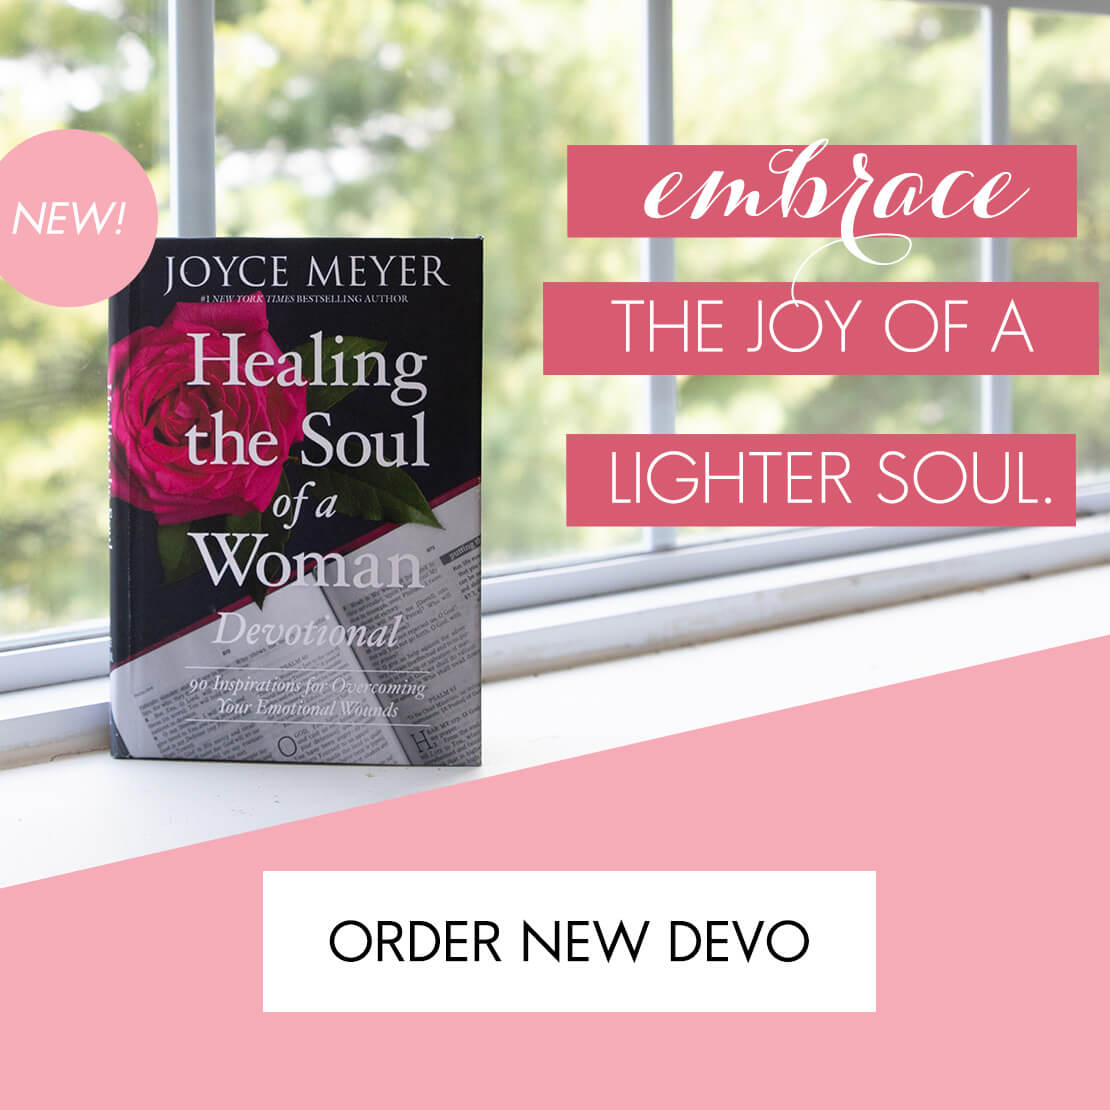 Ad for Healing The Soul of A Woman Devotional